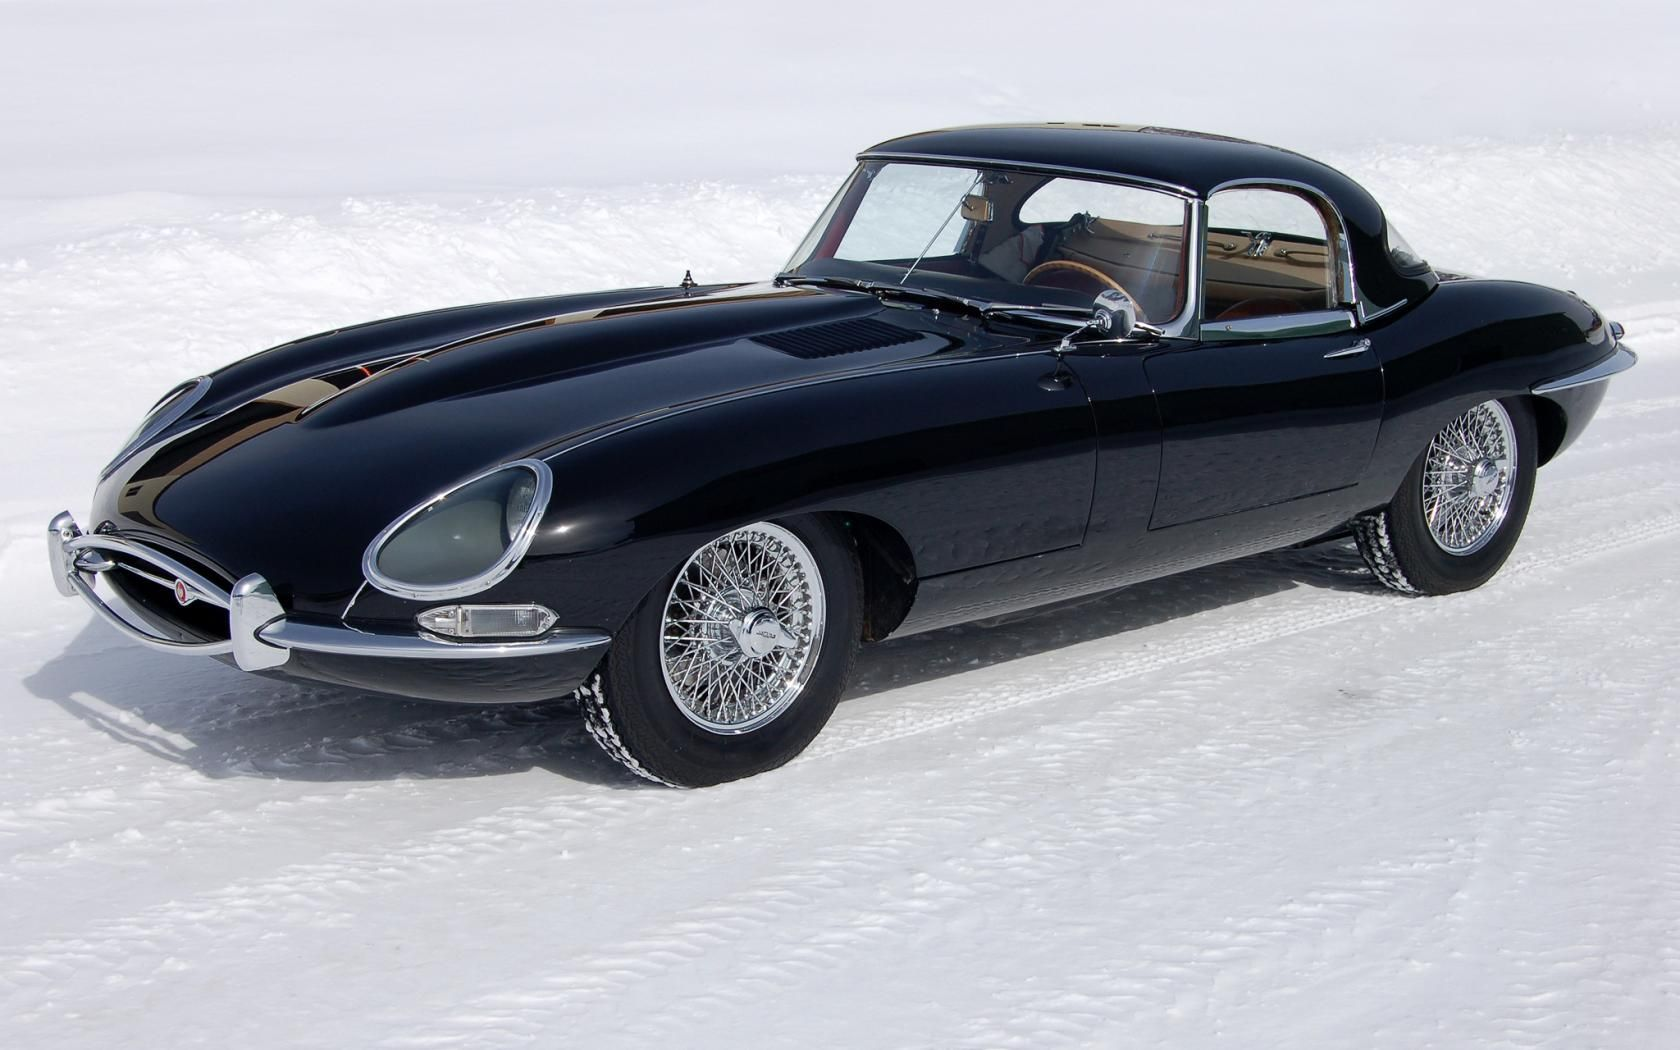 Jaguar E-Type wallpaper - Google Search